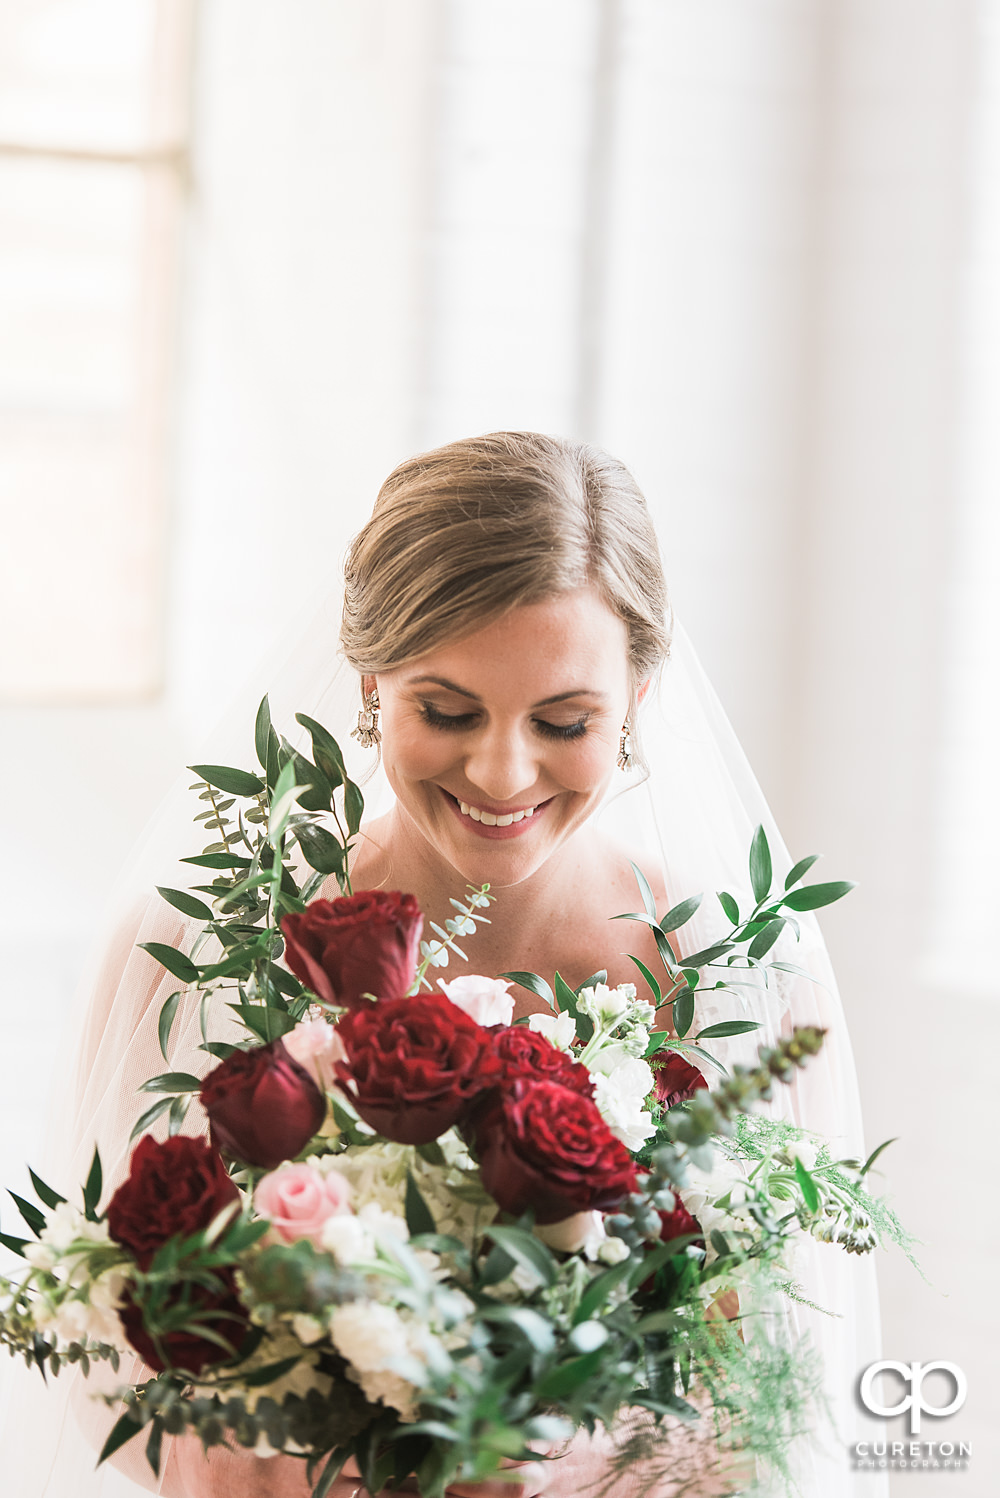 Bride laughing during her bridal session at The Southern Bleachery wedding venue at the Taylor Mill.